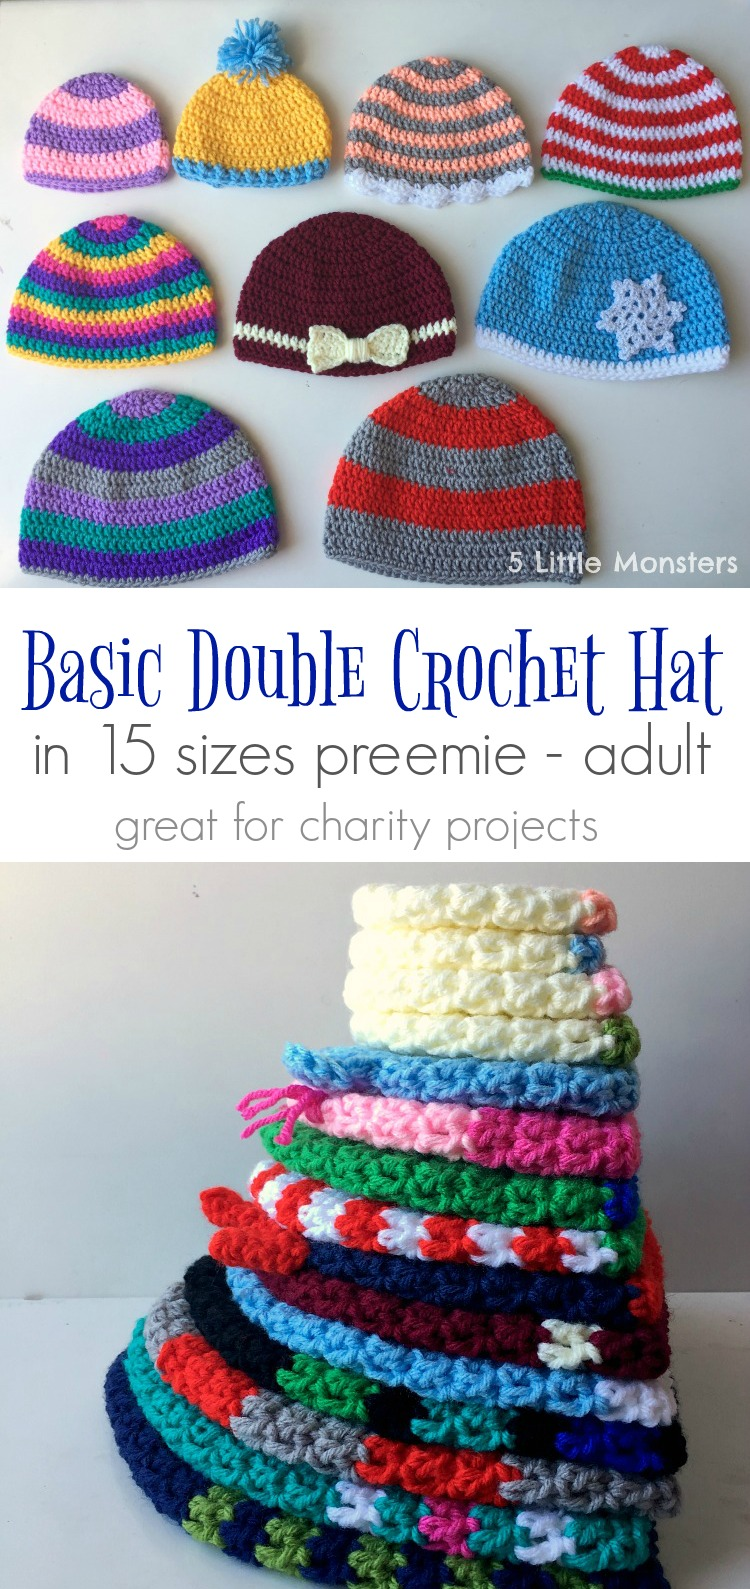 5 Little Monsters  Basic Double Crochet Hats  Preemie-Adult 84b93b30bed